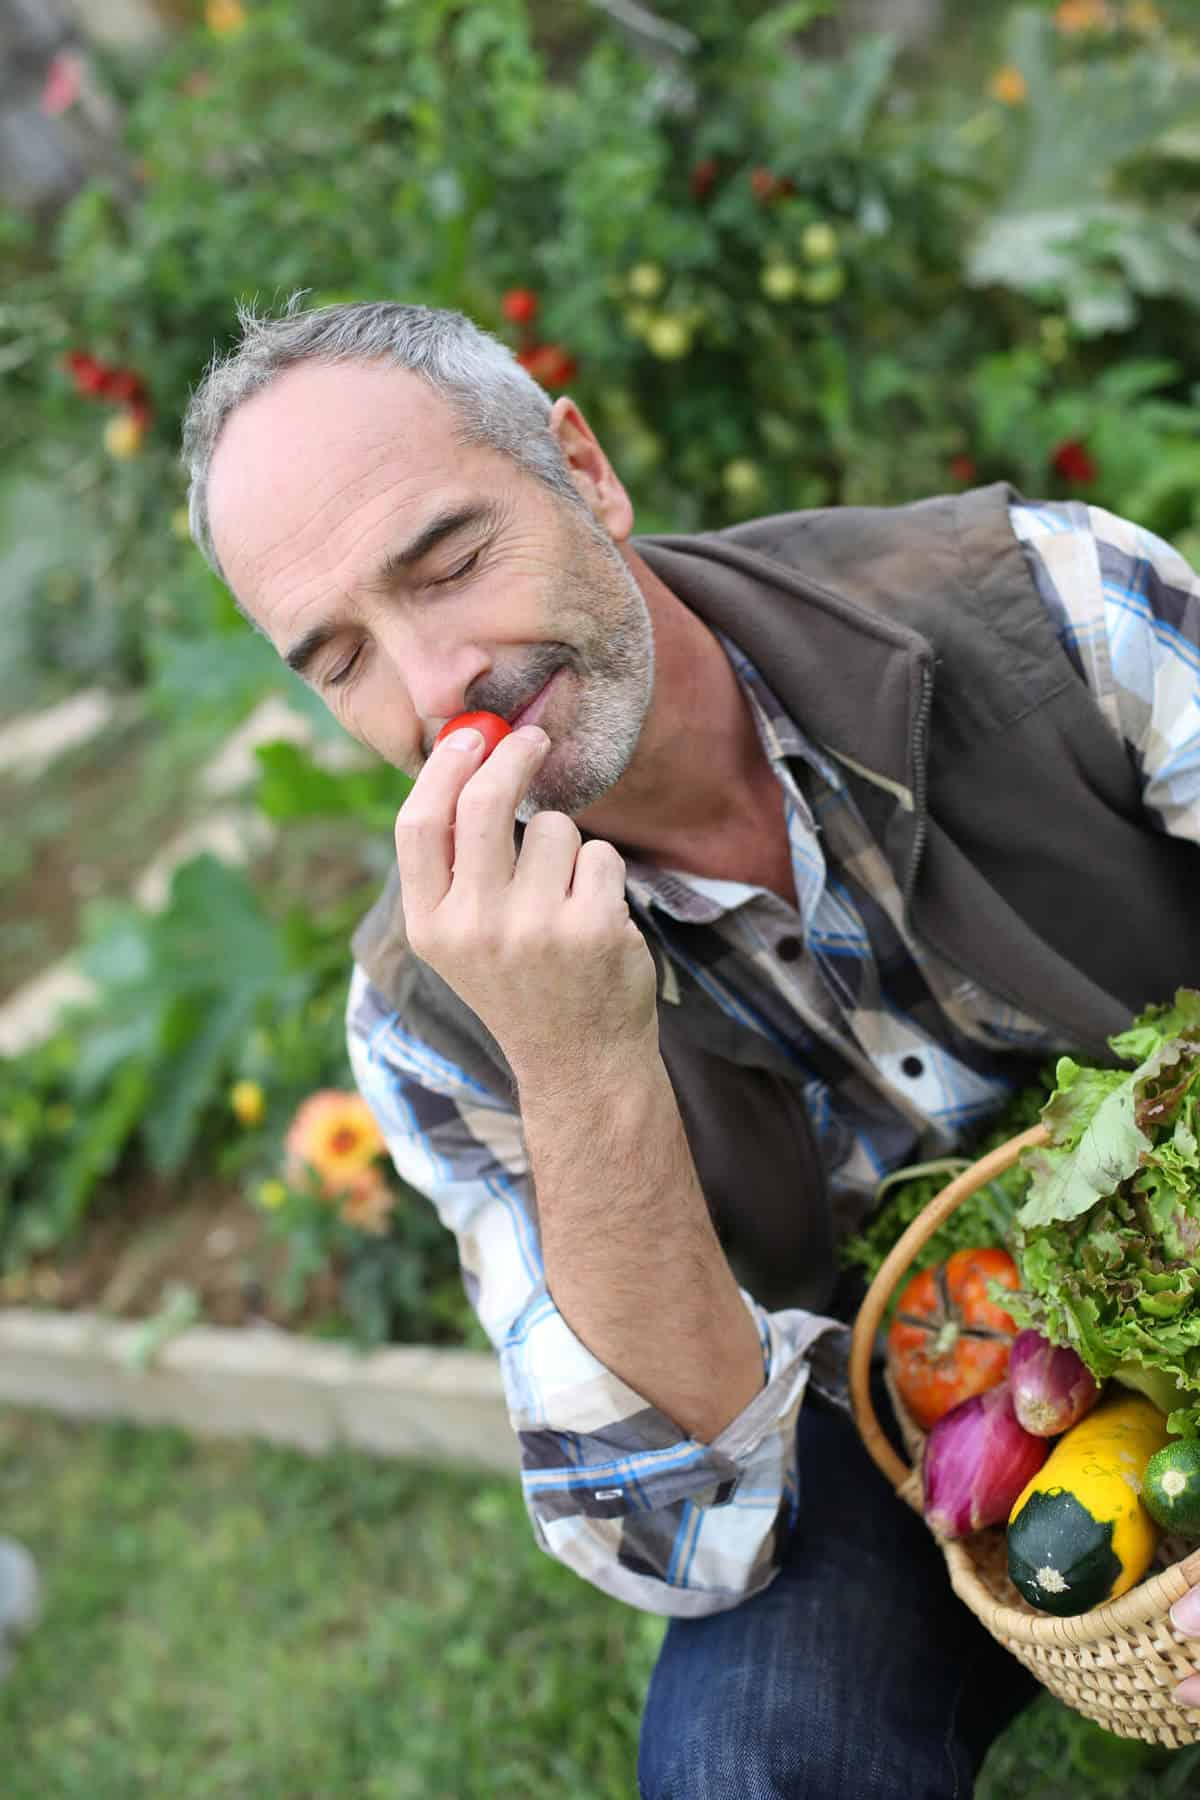 Man in garden smelling vegetable aromas